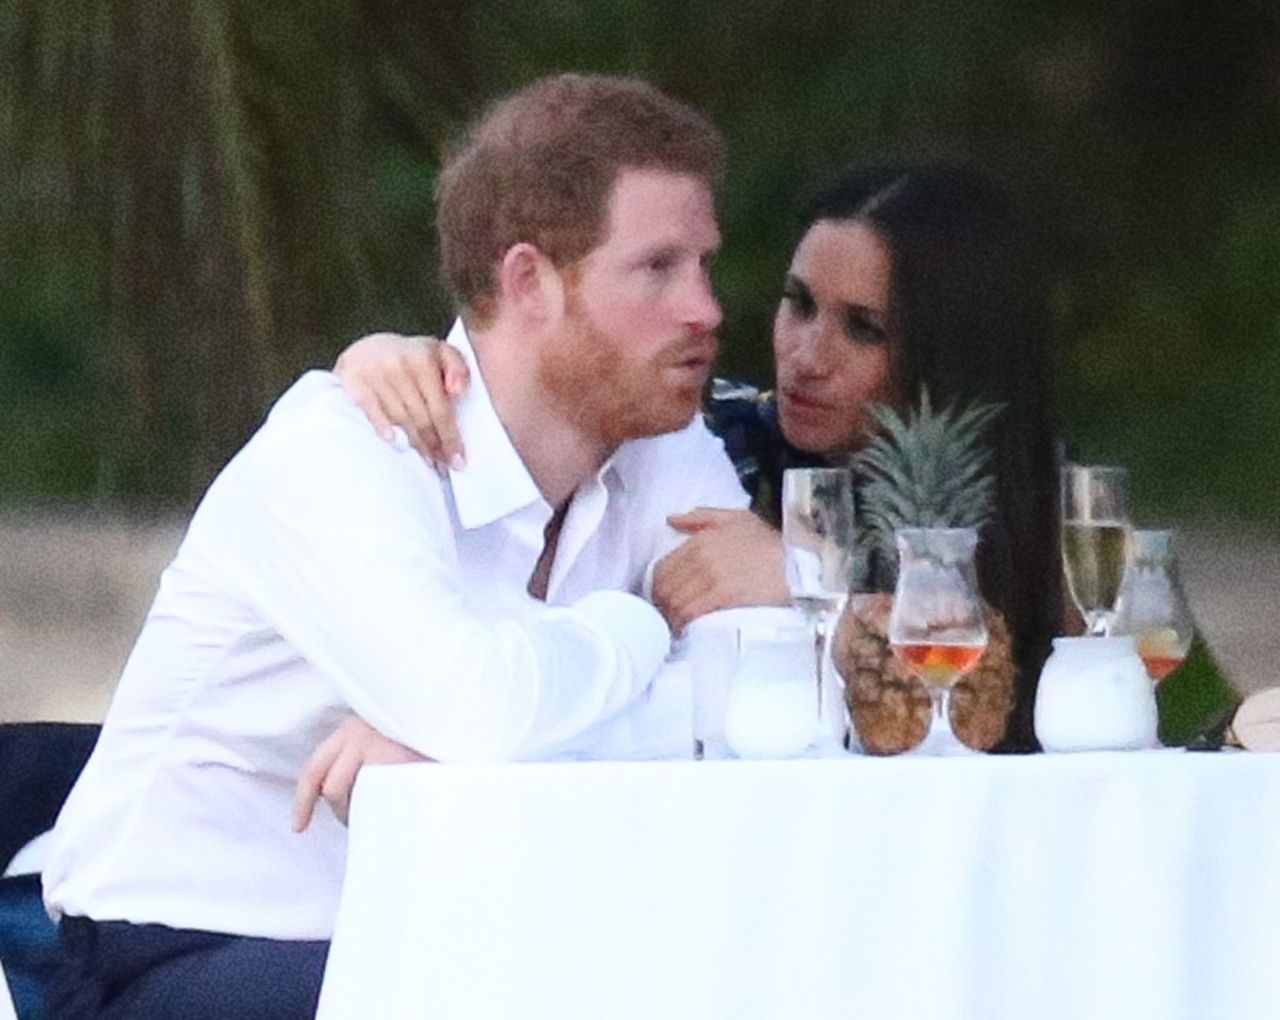 52334406 Royal couple Prince Harry and his girlfriend Meghan Markle were spotted attending a friend's wedding in Jamaica on March 3, 2017. Harry and Meghan enjoyed the festivities with the whole group before breaking off for some private conversation at a small table. Royal couple Prince Harry and his girlfriend Meghan Markle were spotted attending a friend's wedding near Jamaica on March 3, 2017. Harry and Meghan enjoyed the festivities with the whole group before breaking off for some private conversation at a small table. FameFlynet, Inc - Beverly Hills, CA, USA - +1 (310) 505-9876